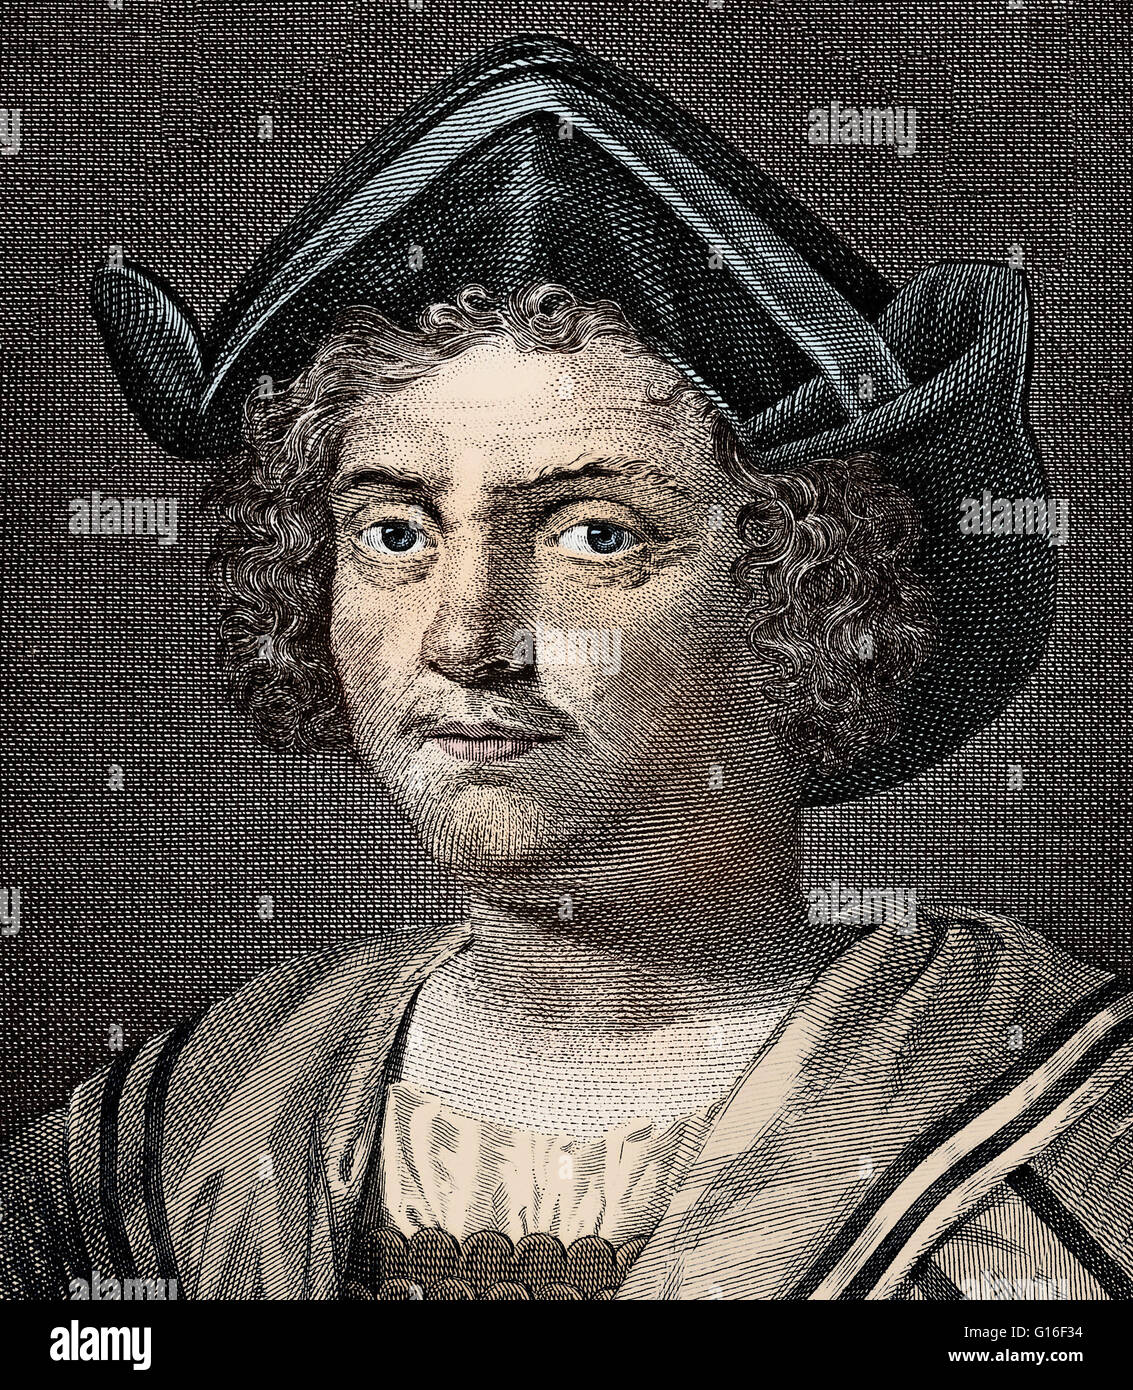 a brief biography of the navigator christopher columbus Christopher columbus is known the world over as 'the man who discovered america' despite the fact that he was not the first european to do so when he landed in the americas in 1492.